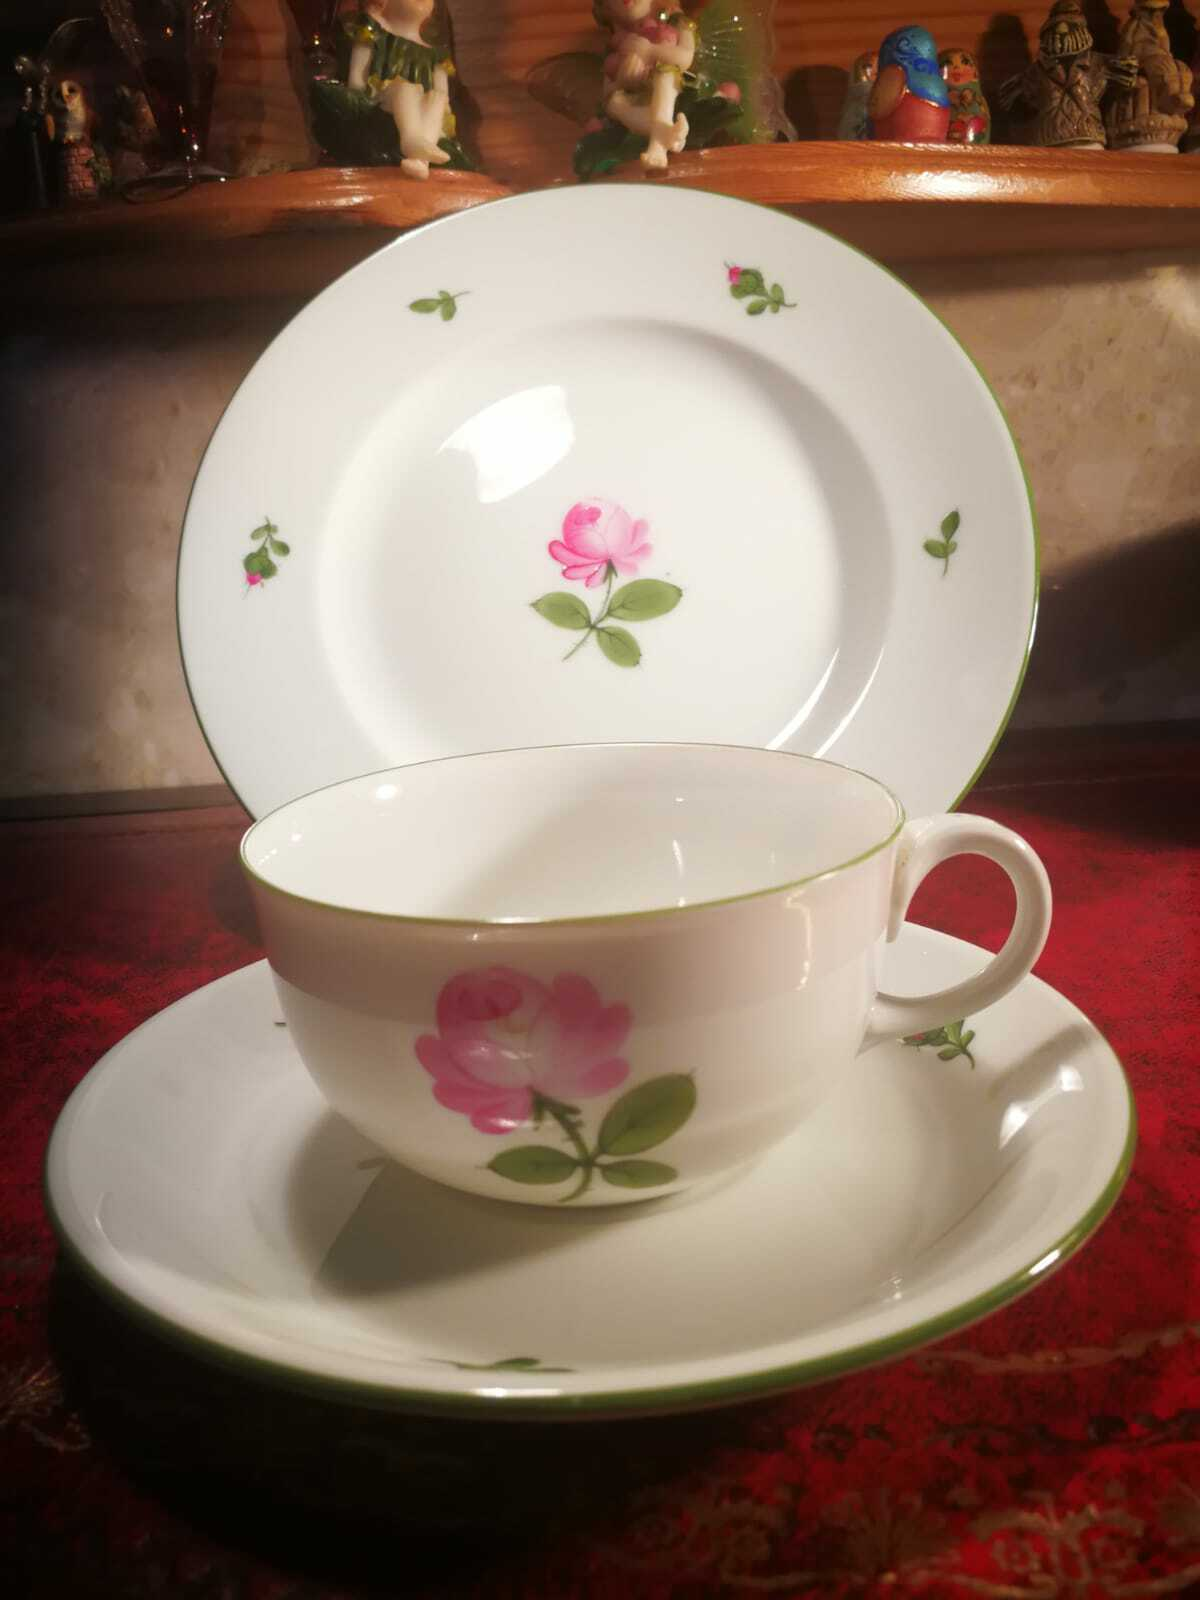 Image 01 - WIEN AUGARTEN Wienna Cup & Saucers and Side Plate 5089 VGC Perfect Condition